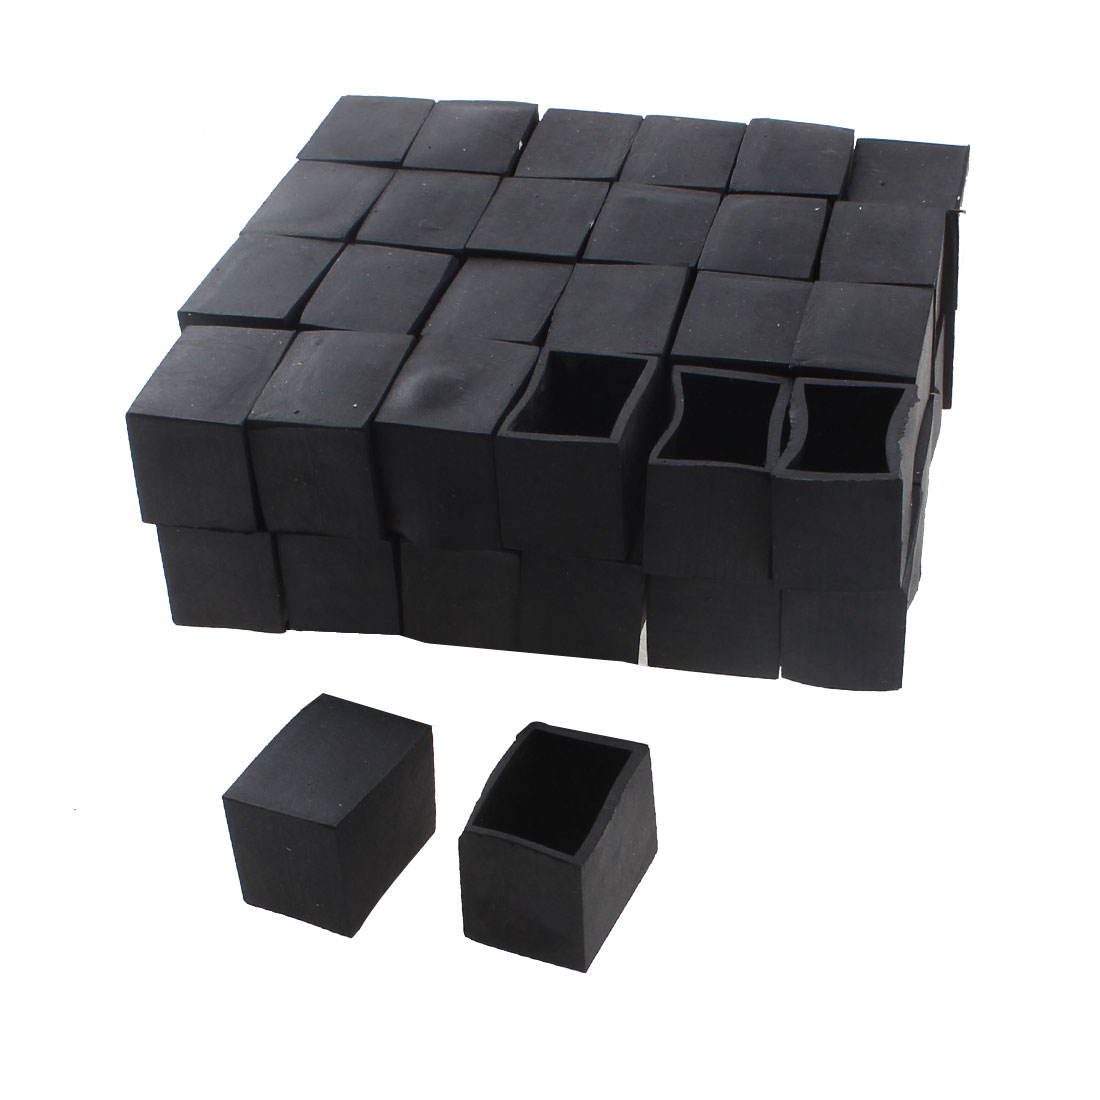 30mm x 20mm Rectangle Shape Furniture Table Chair Foot Leg Rubber End Cap Cover Black 50pcs